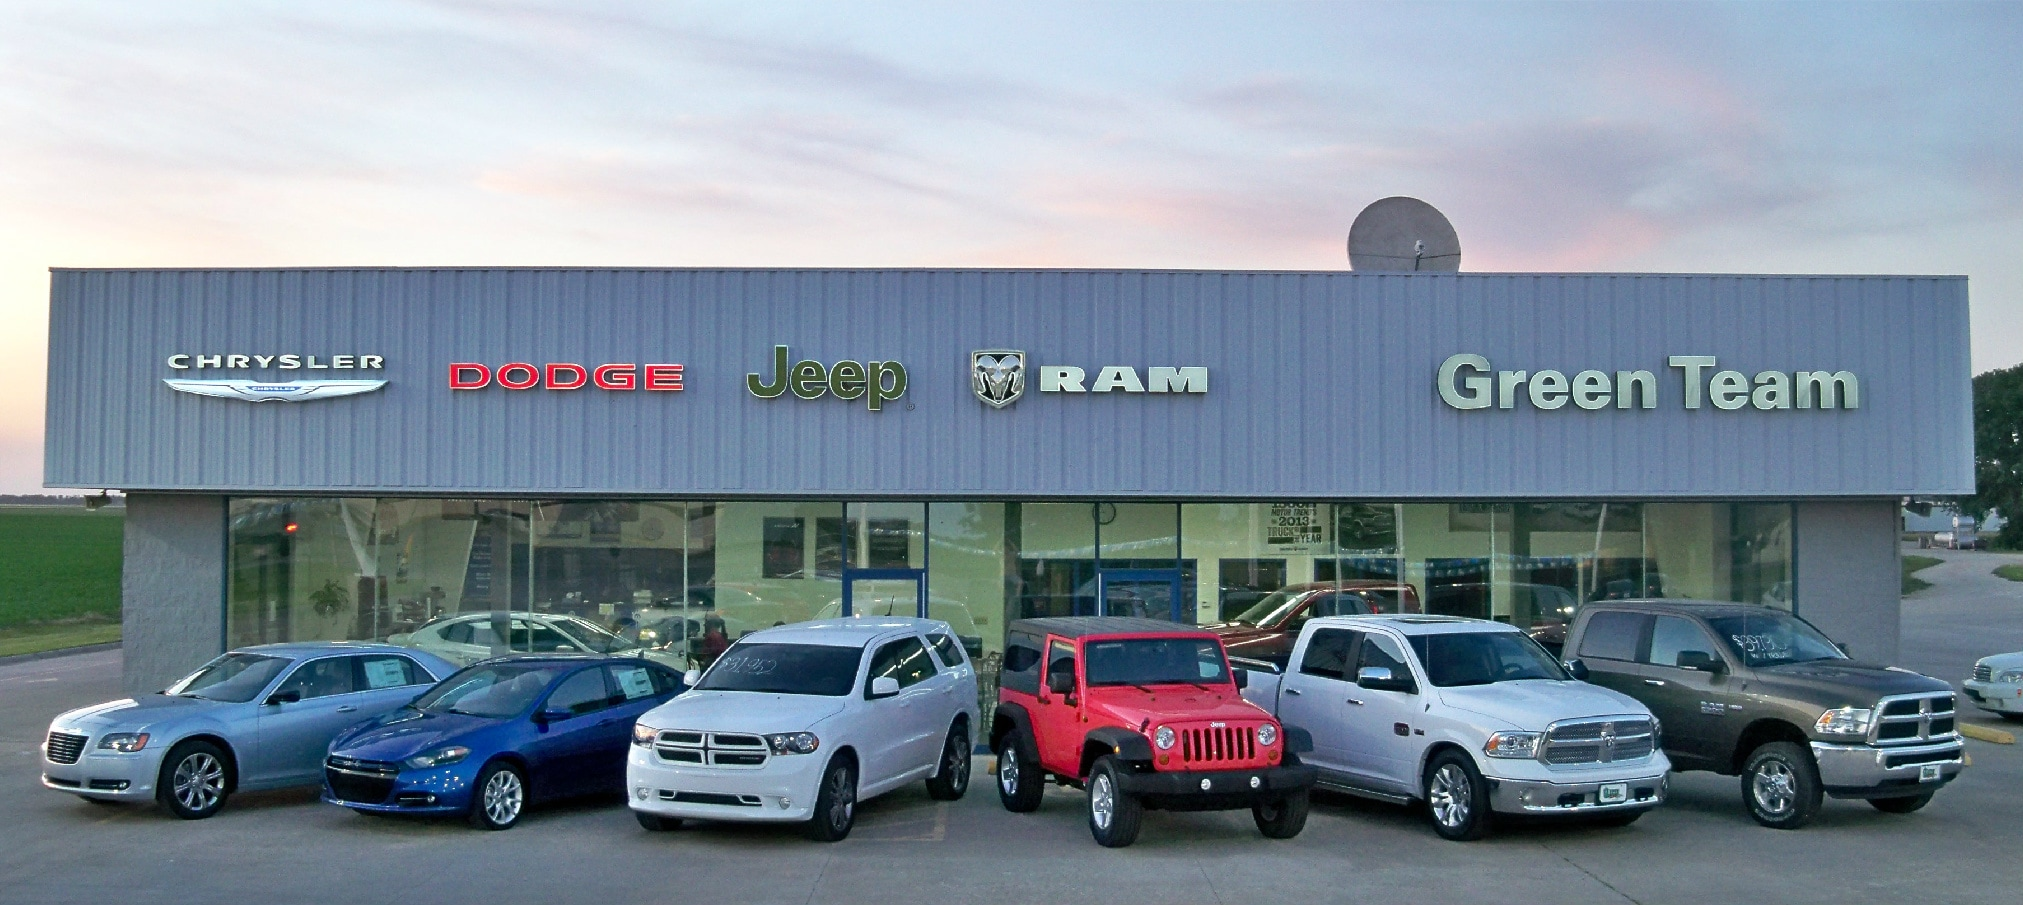 pontiac chrysler dodge jeep dealership in clay center in january 2006. Cars Review. Best American Auto & Cars Review